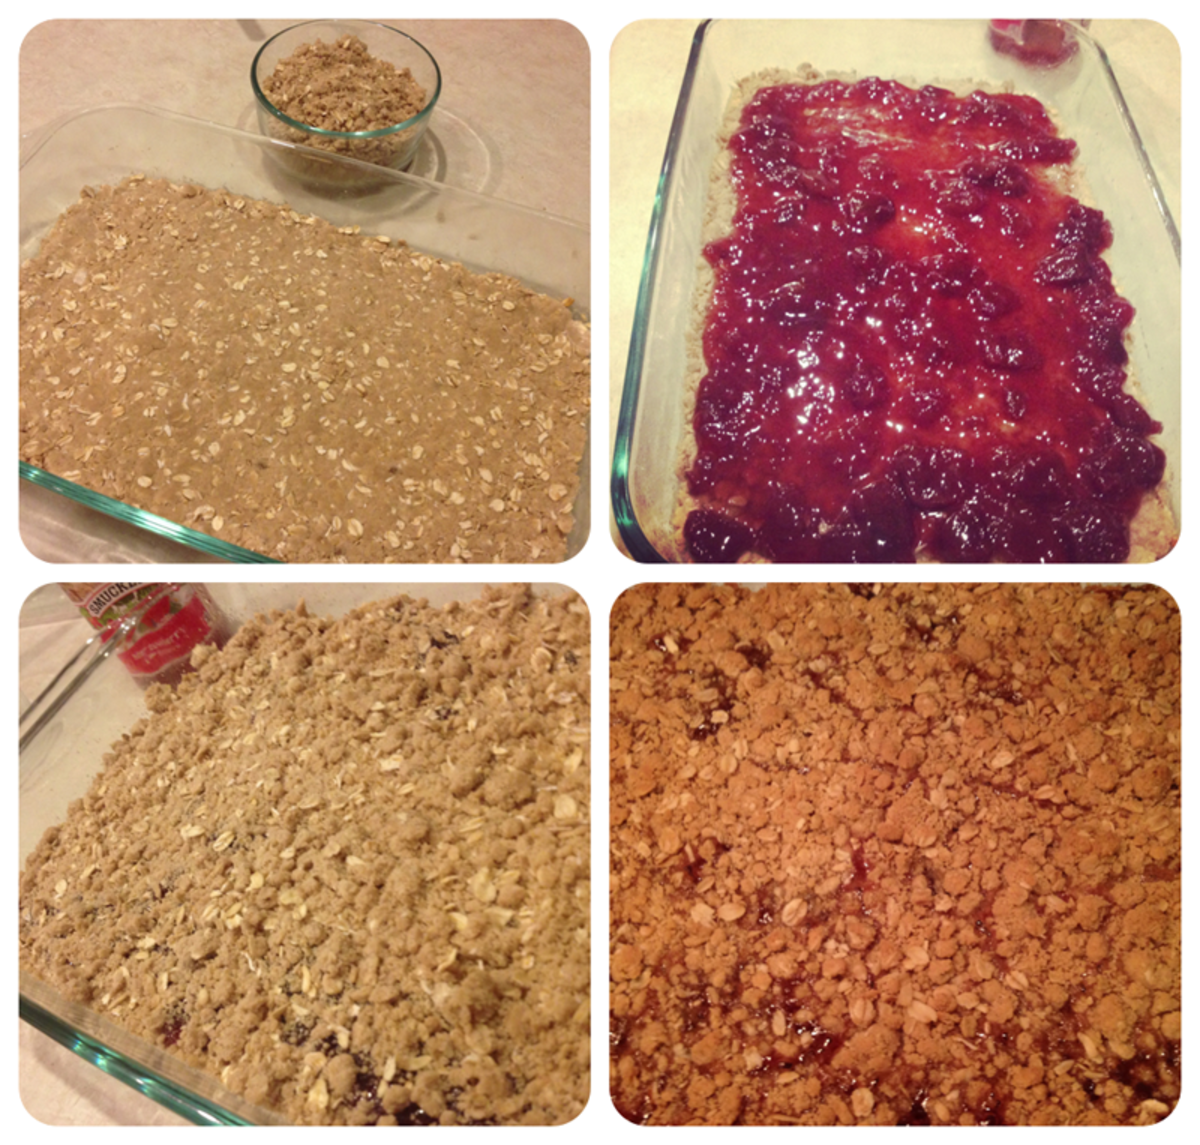 Home Made Oatmeal Bars